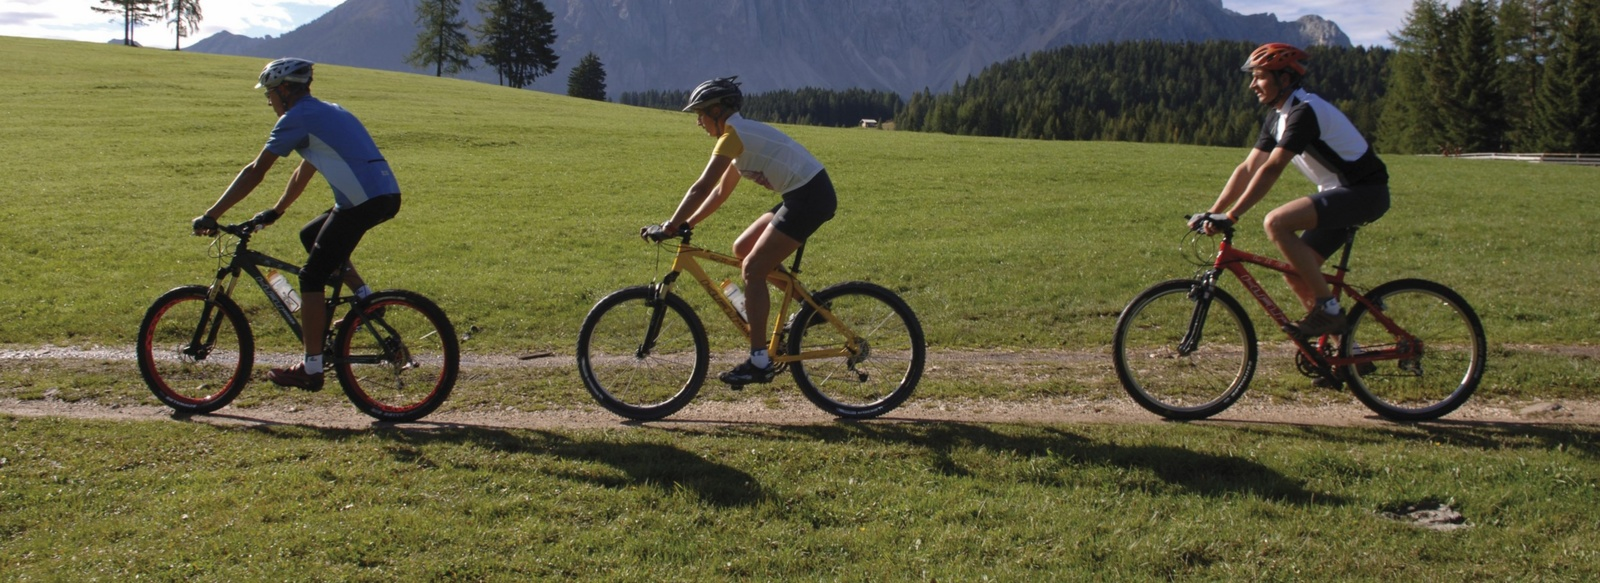 Fate un giro in Mountain bike in Alto Adige - Lana